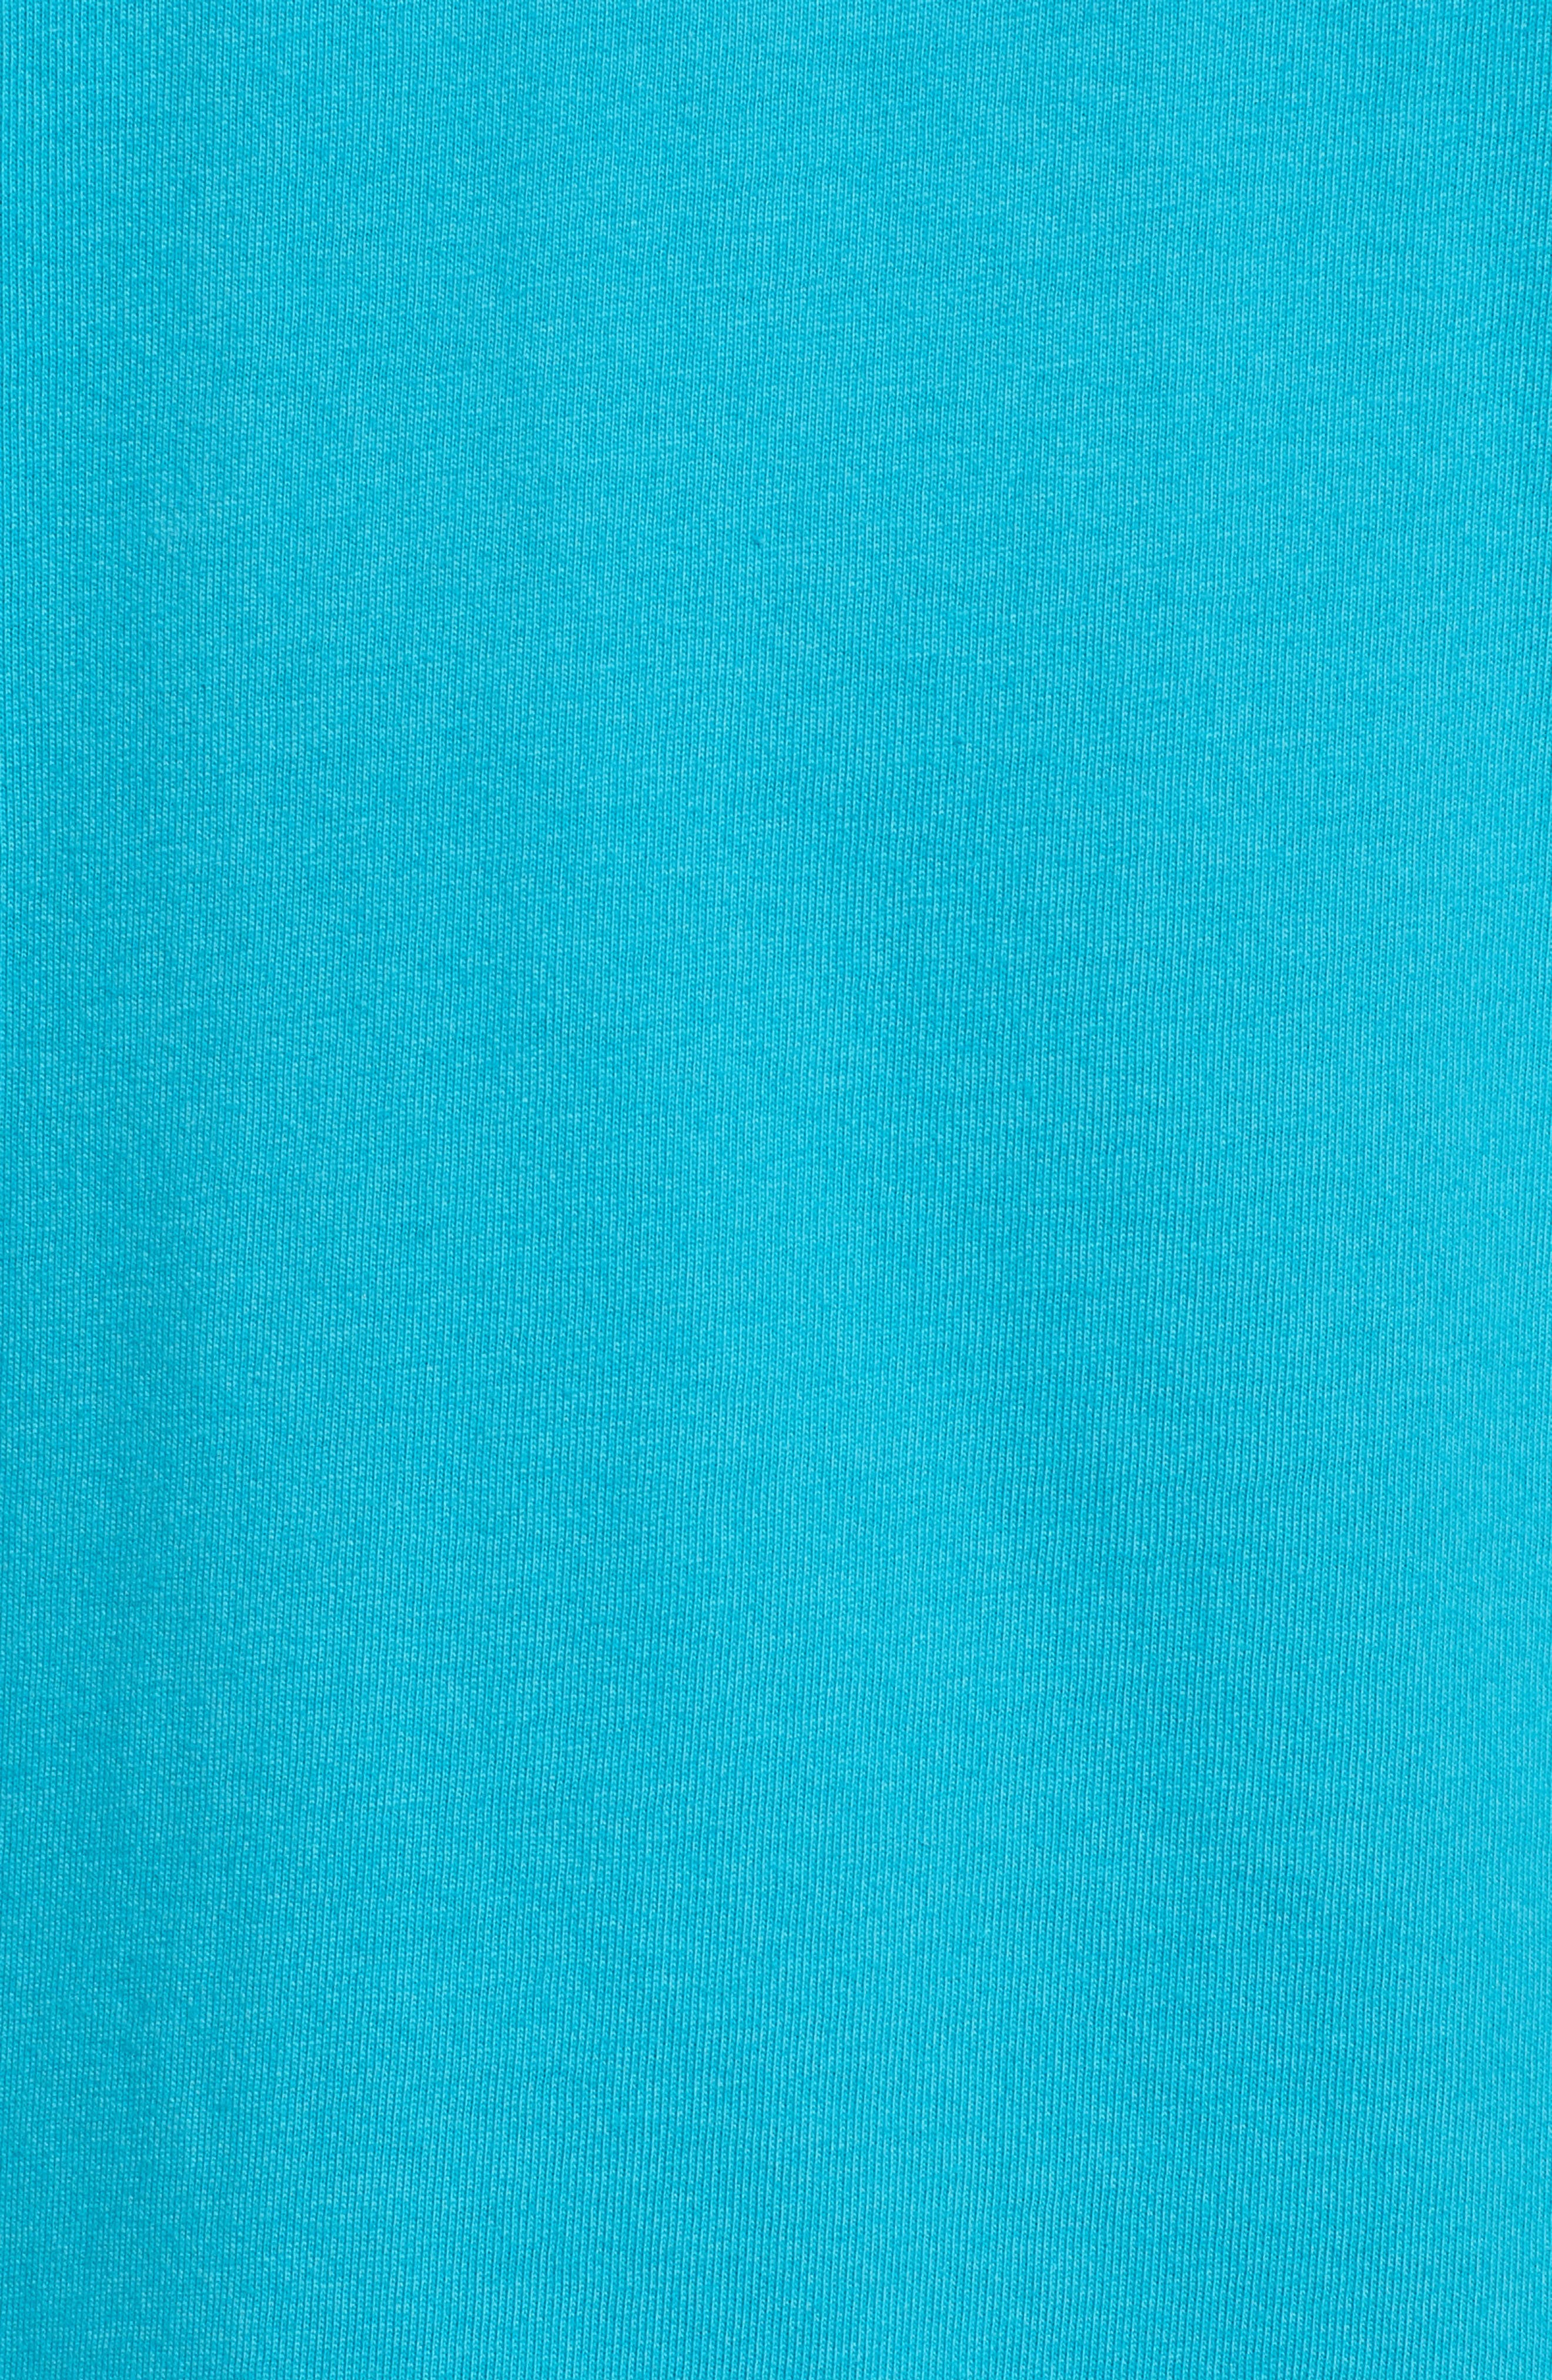 The Pursuit of Hoppiness Graphic T-Shirt,                             Alternate thumbnail 5, color,                             Riviera Azure